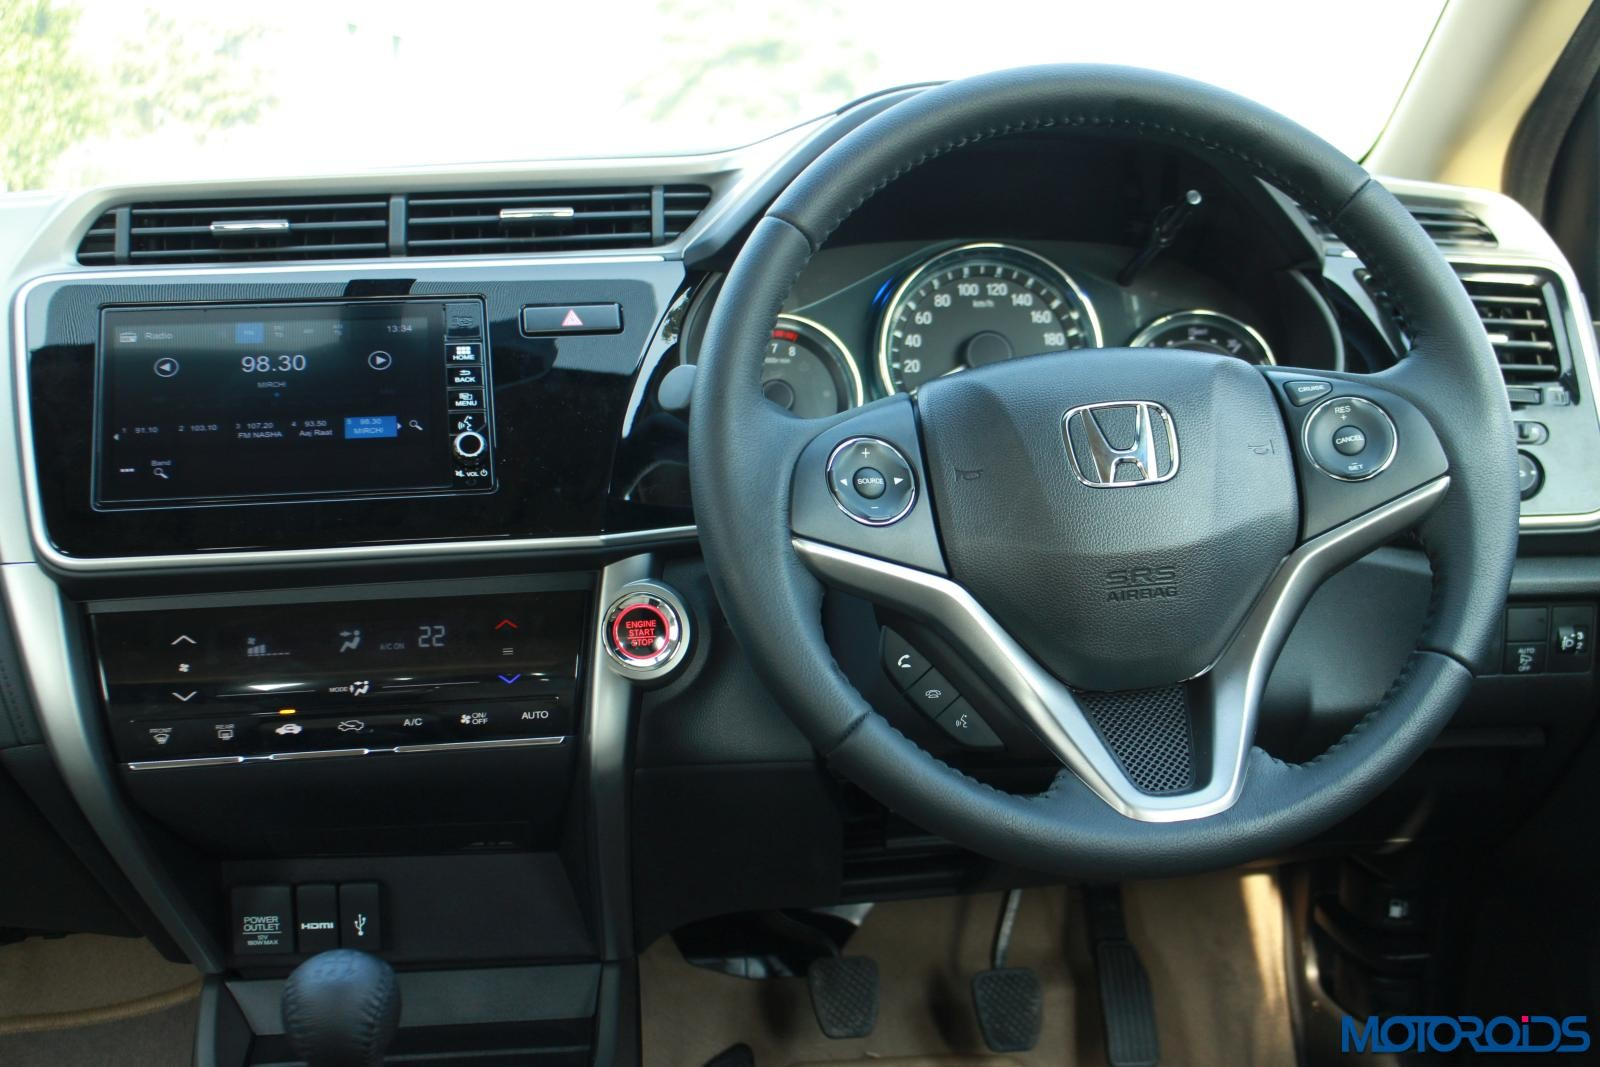 February 16, 2017-2017-Honda-City-Review-59.jpg